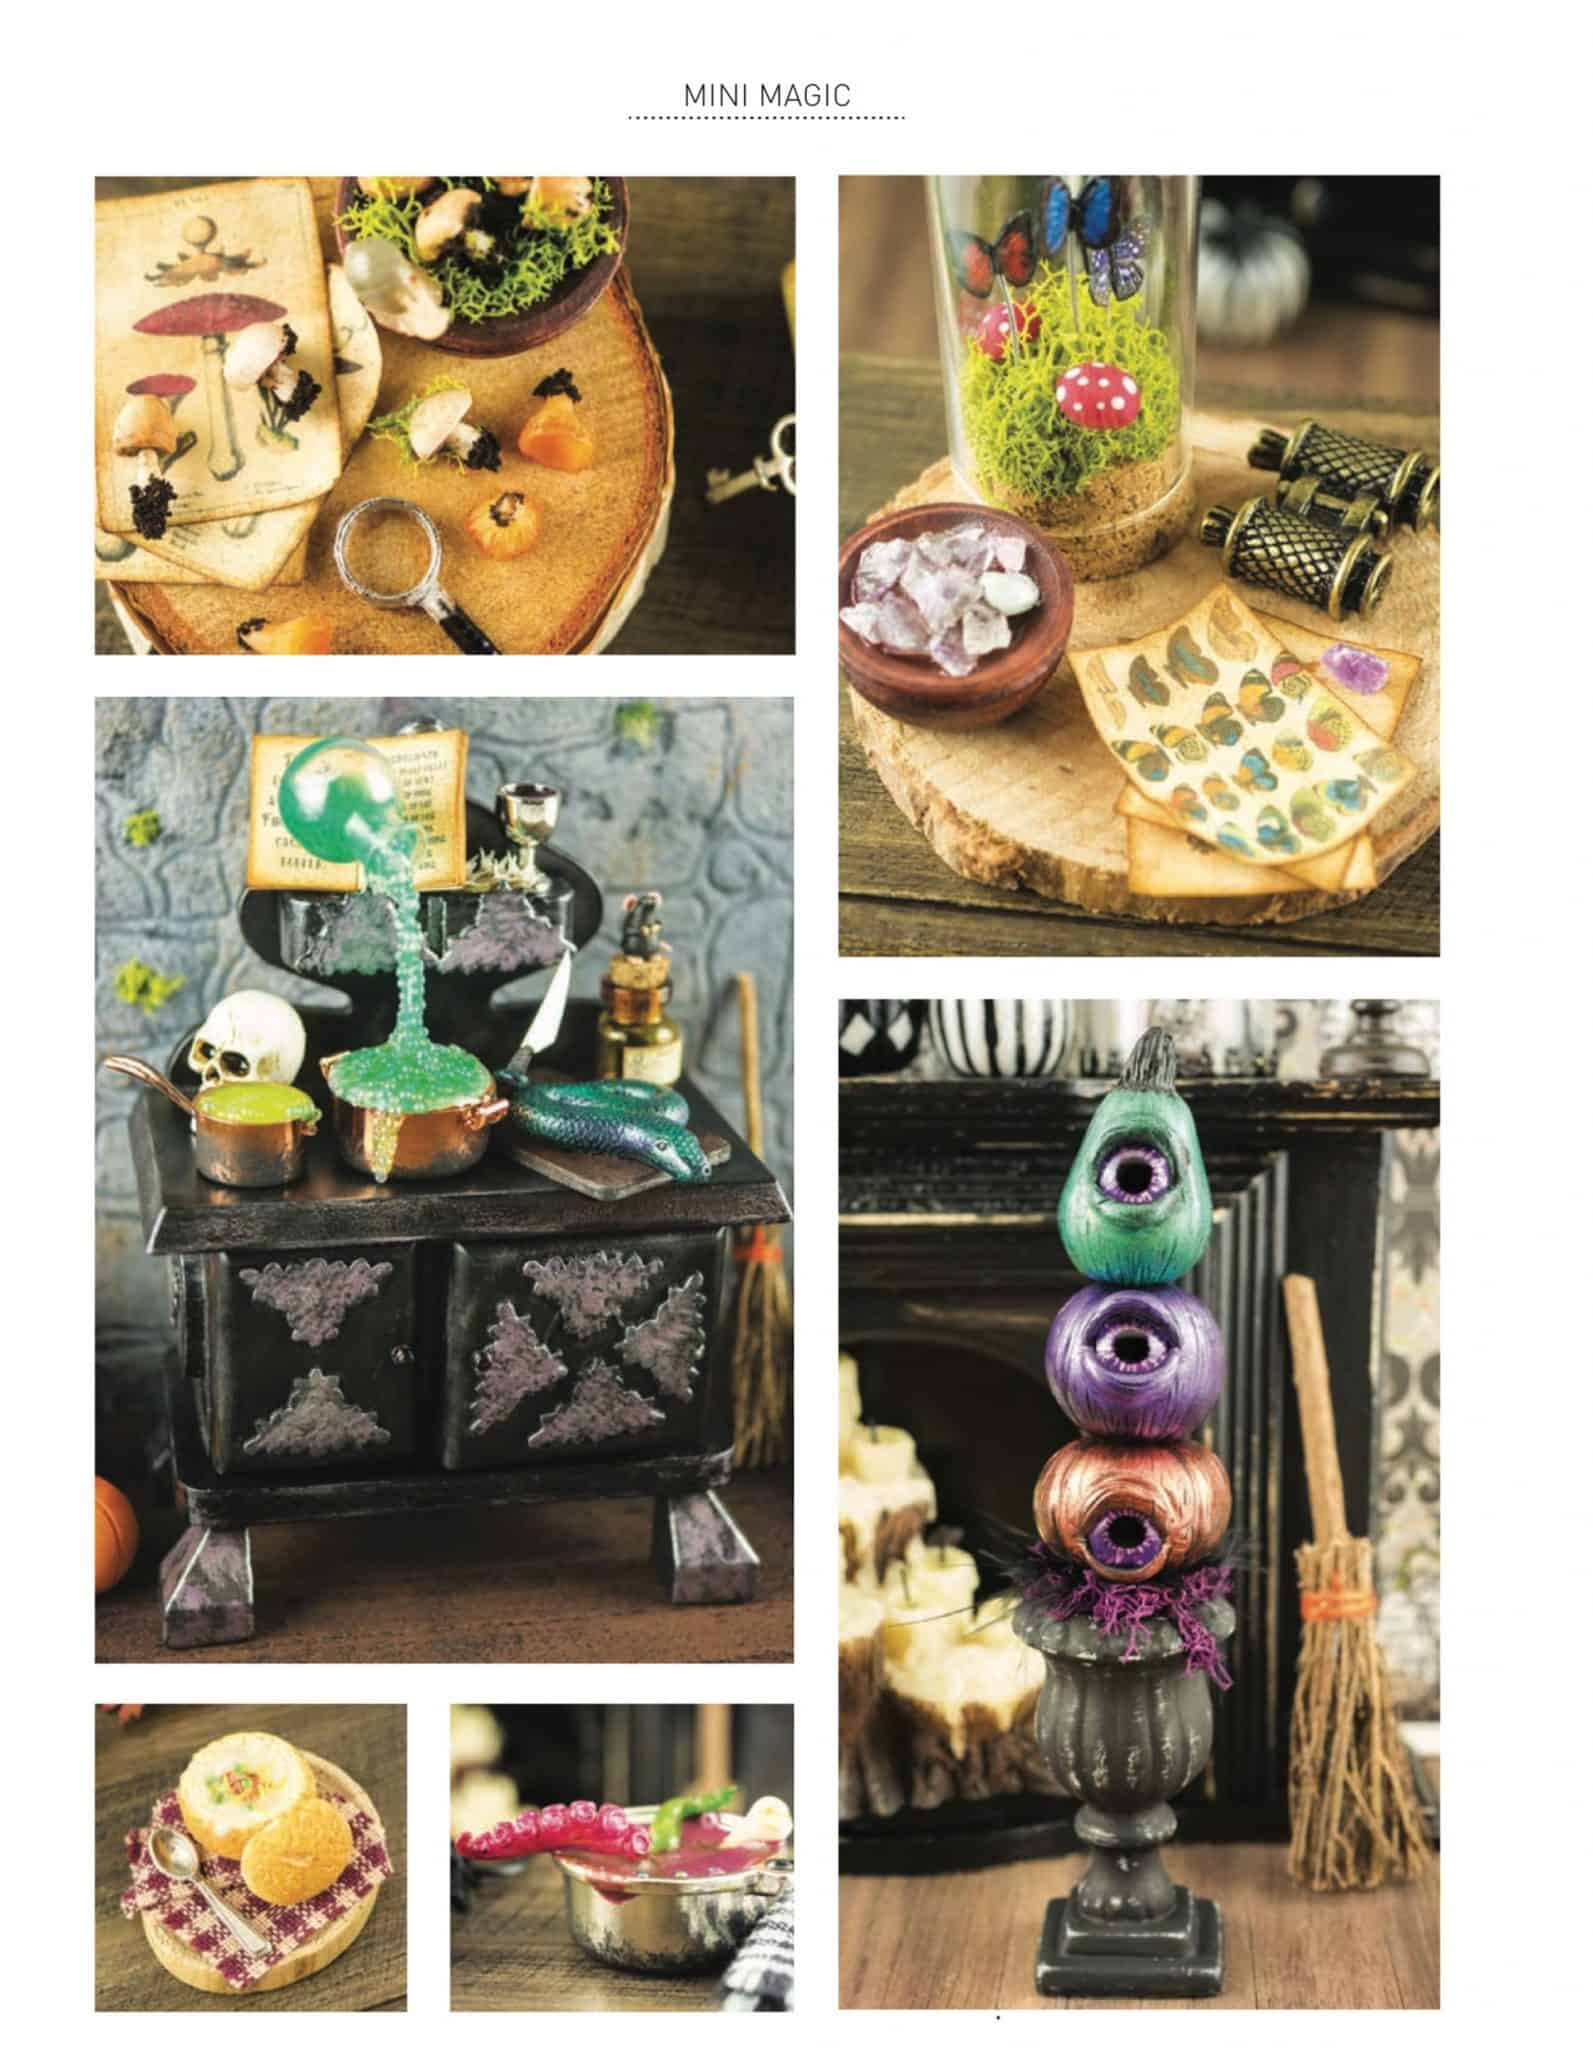 Featured in the Halloween Issue of American Miniaturist Magazine